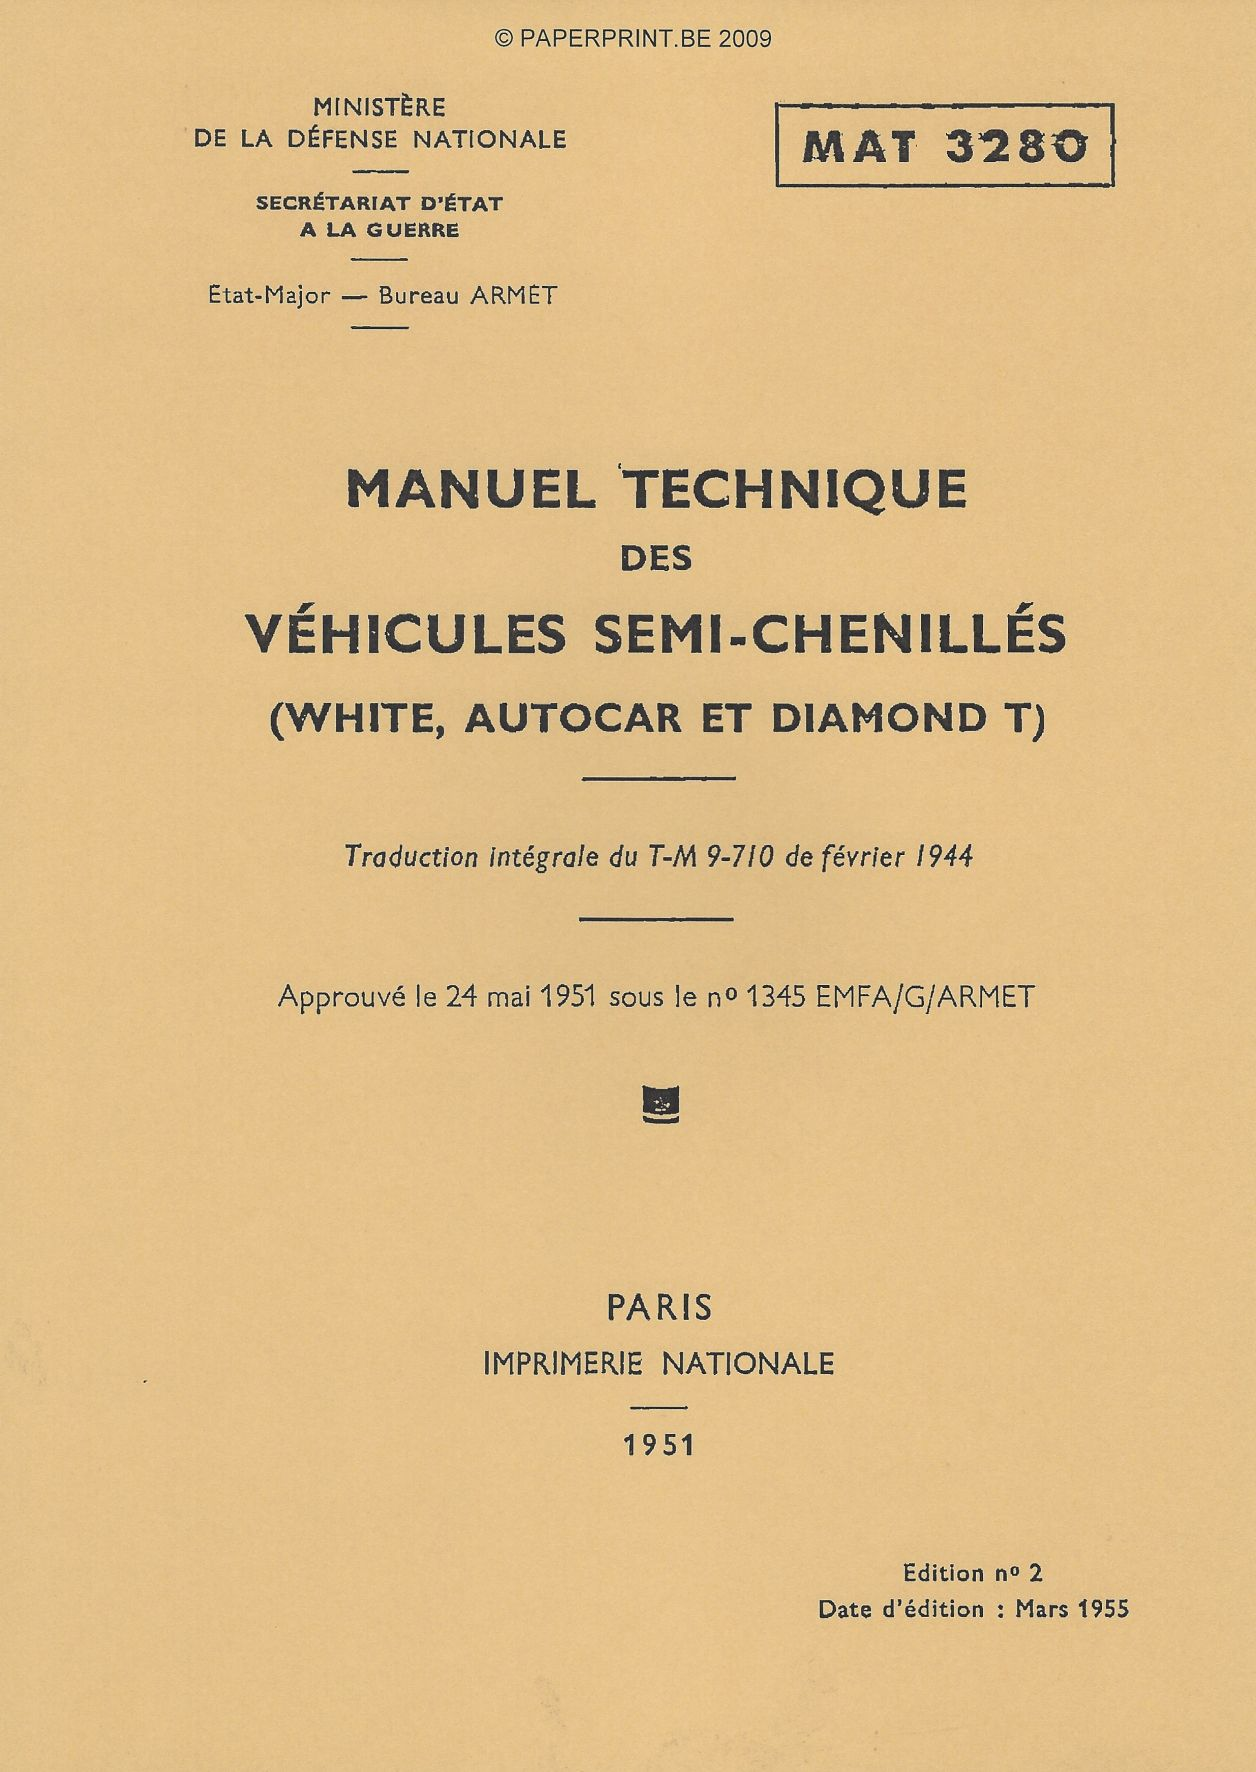 TM 9-710 FR VEHICULES SEMI-CHENILLES (WHITE, AUTOCAR ET DIAMOND T)